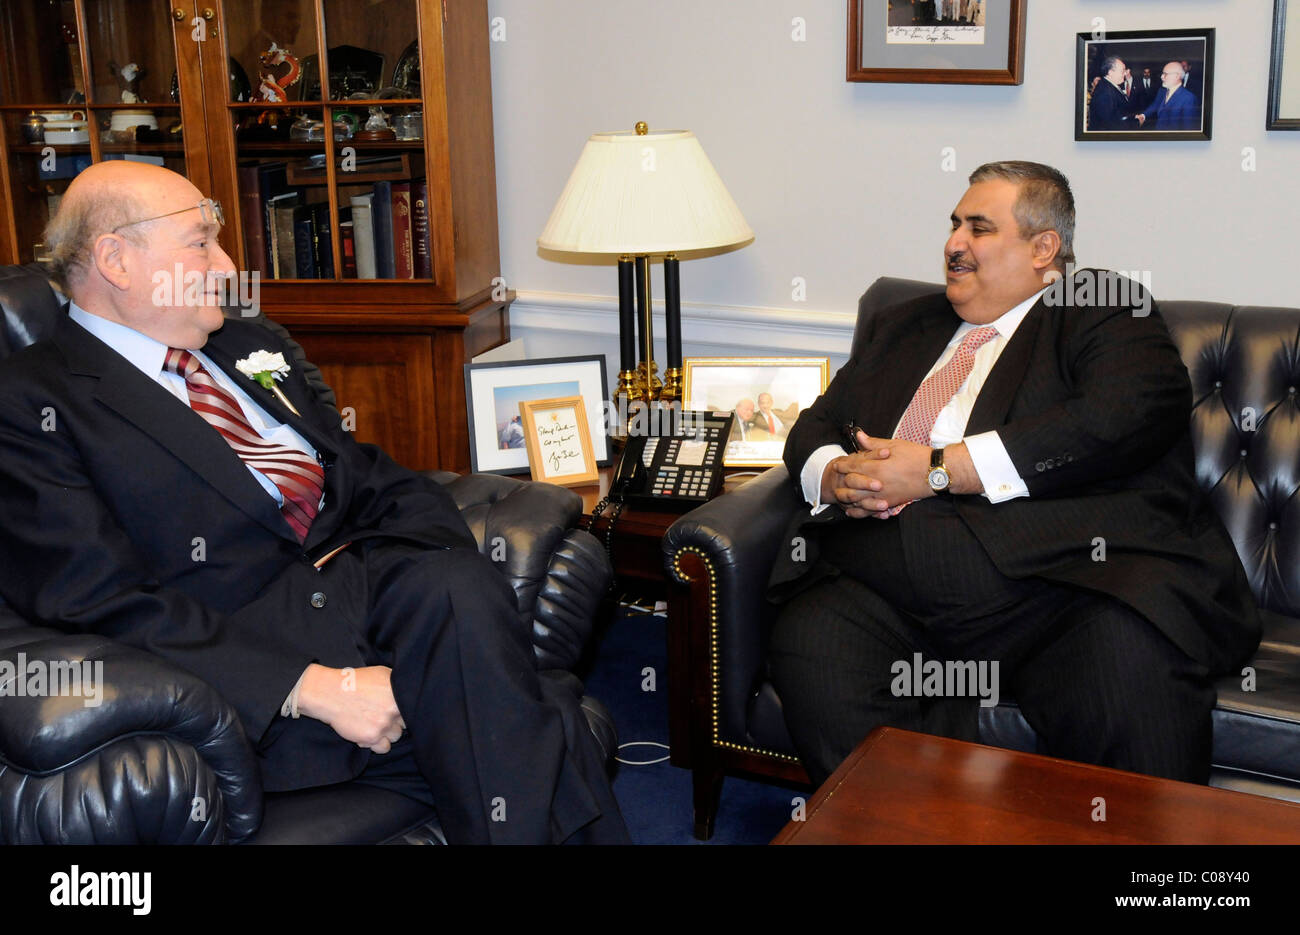 His Excellency Shaikh Khalid Bin Ahmed AL Khalifa, Minister of Foreign Affairs of the Kingdom of Bahrain meets with - Stock Image